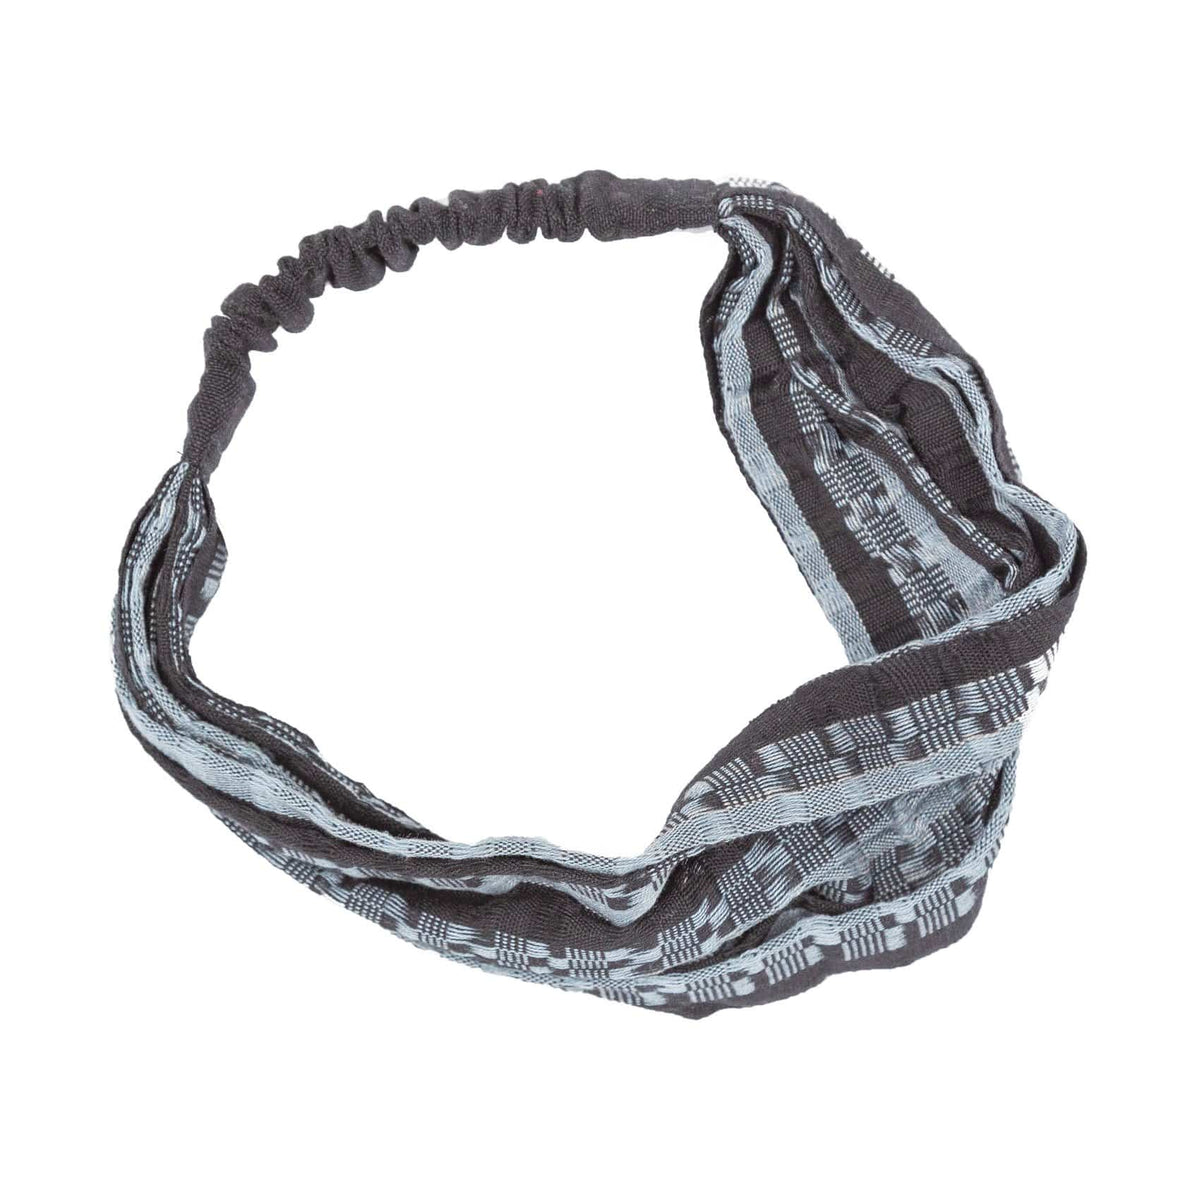 Handmade Bandanna-Style Lacy Headband Black and Grey